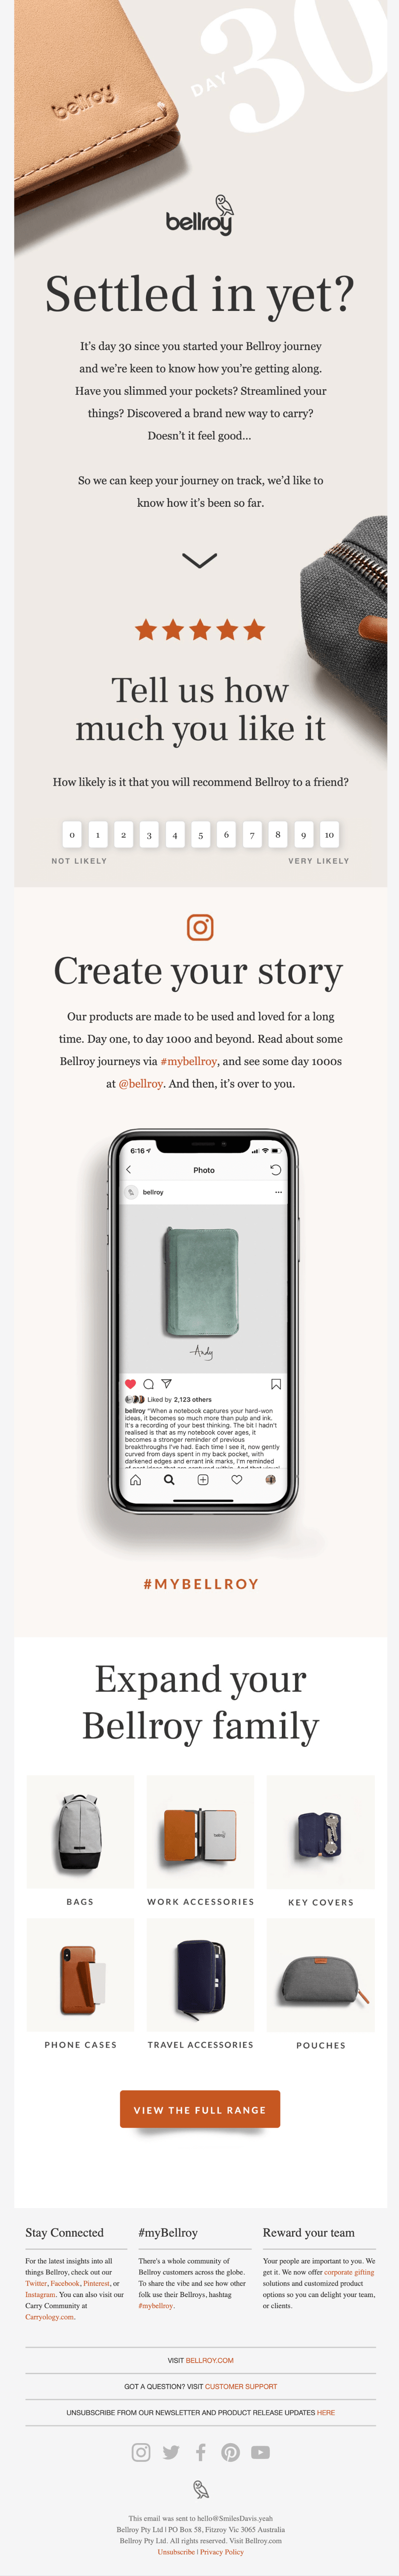 Email marketing example from Bellroy